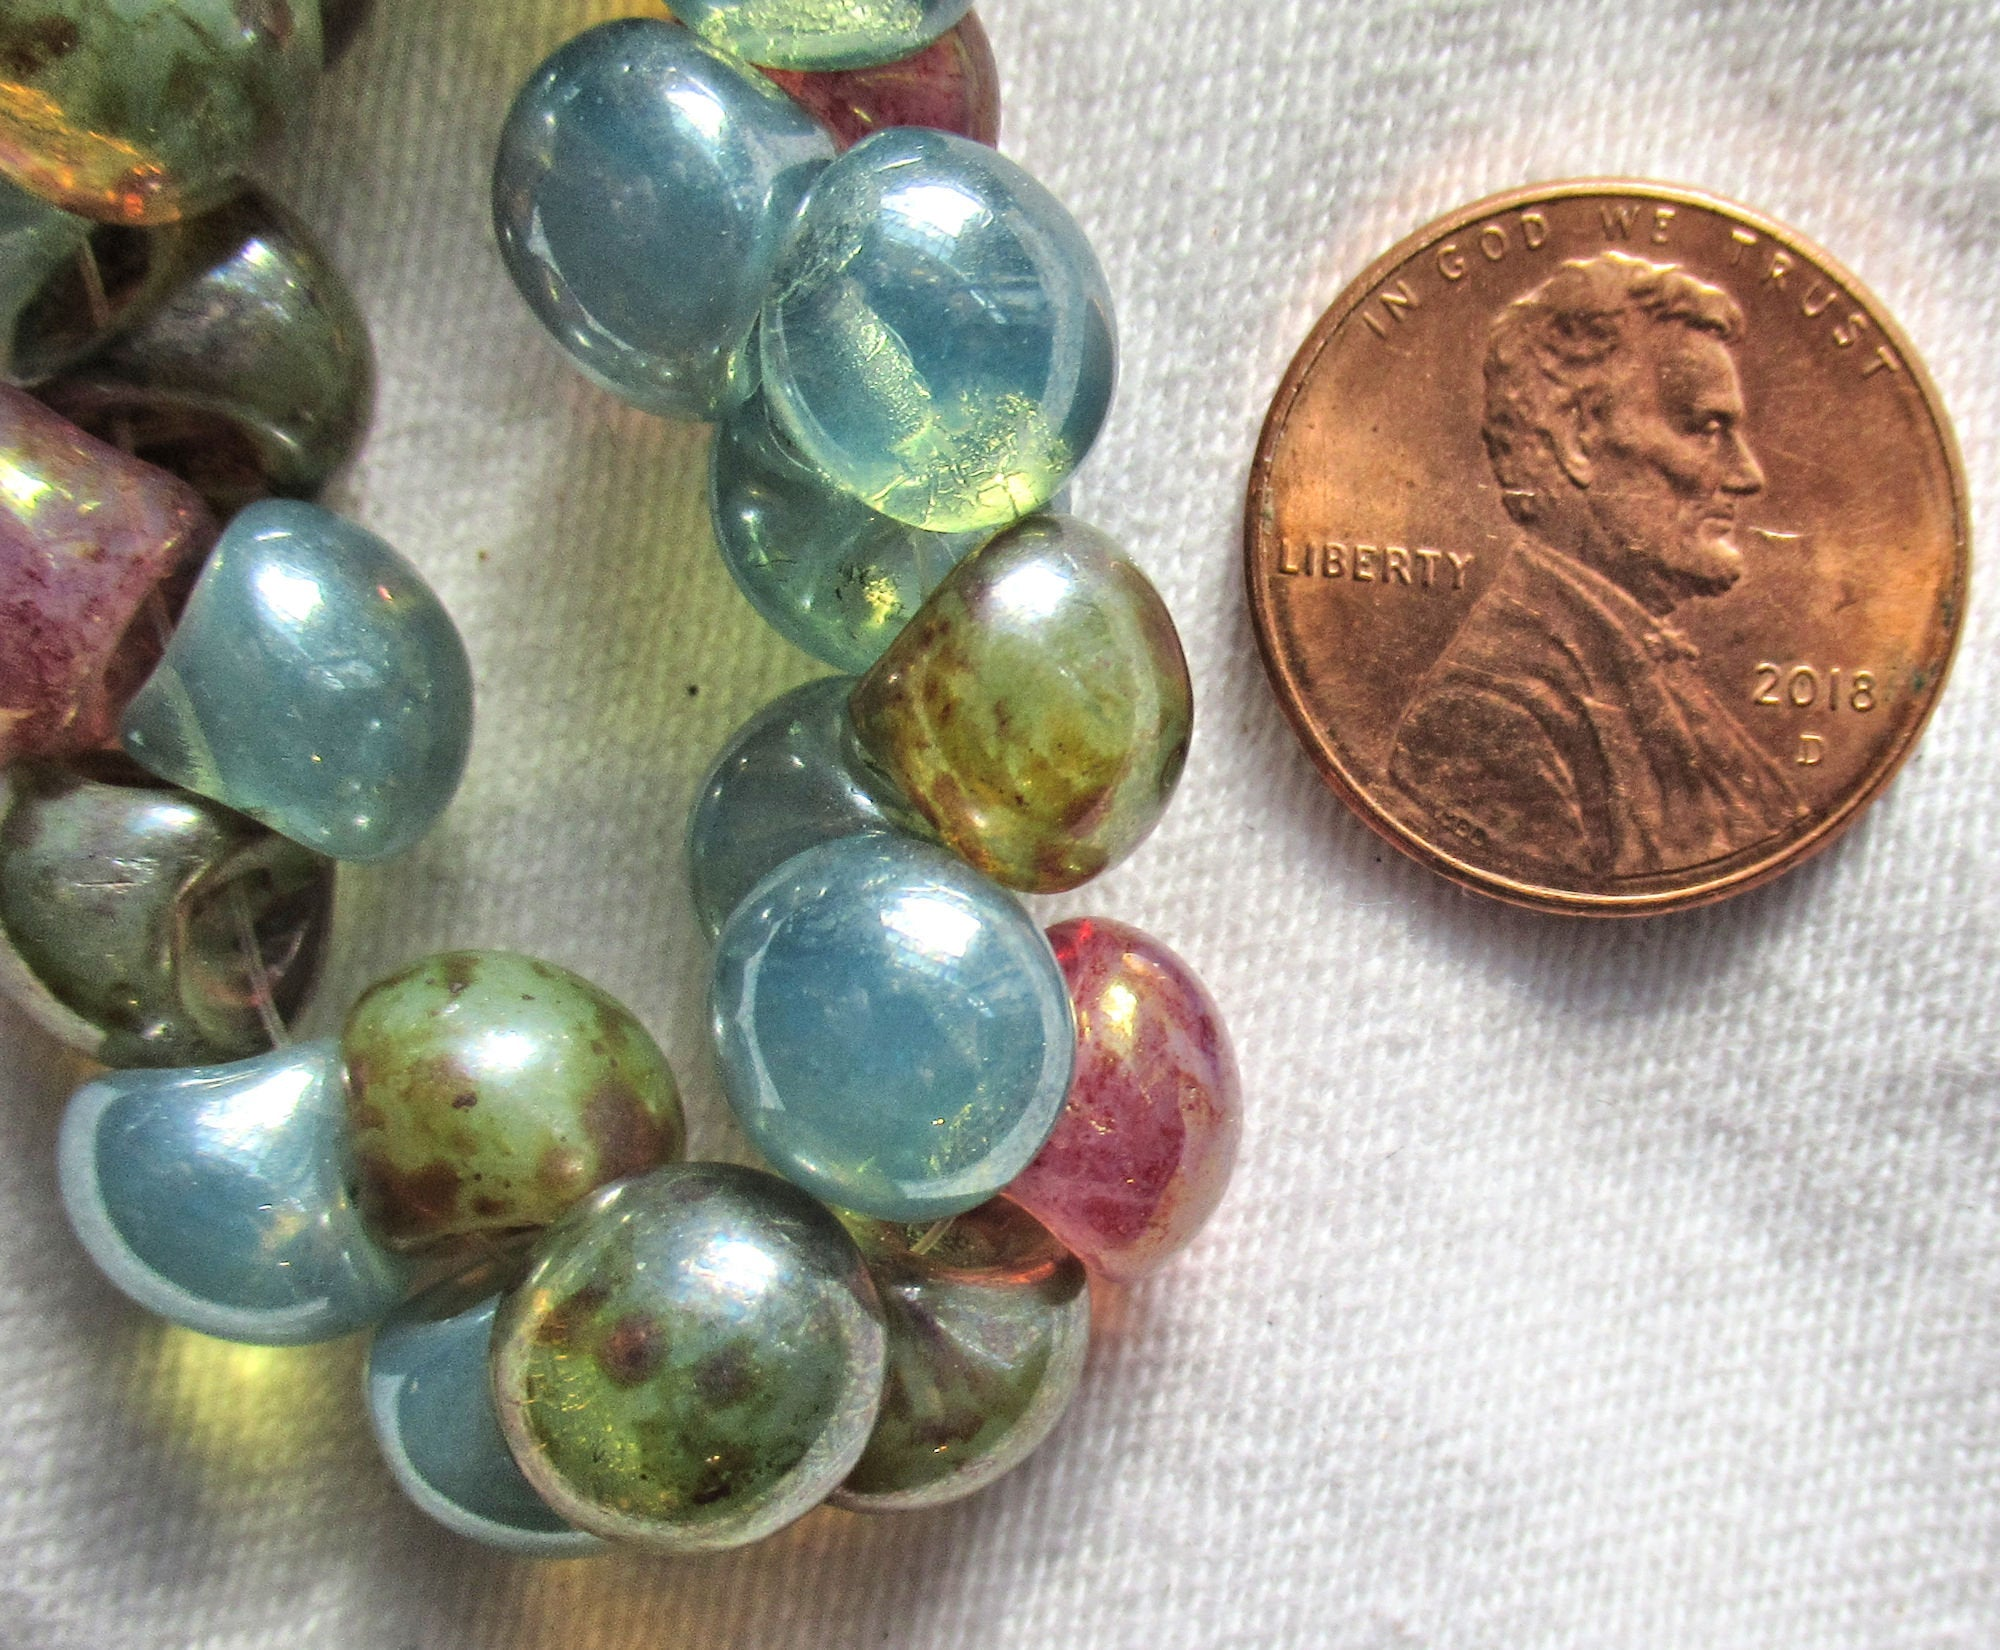 Seahorse Beads Czech Glass Blue Green Purple Picasso Glaze Translucent Opal Table Cut Animal Coin Mix 23MM 3 Beads CPETC002